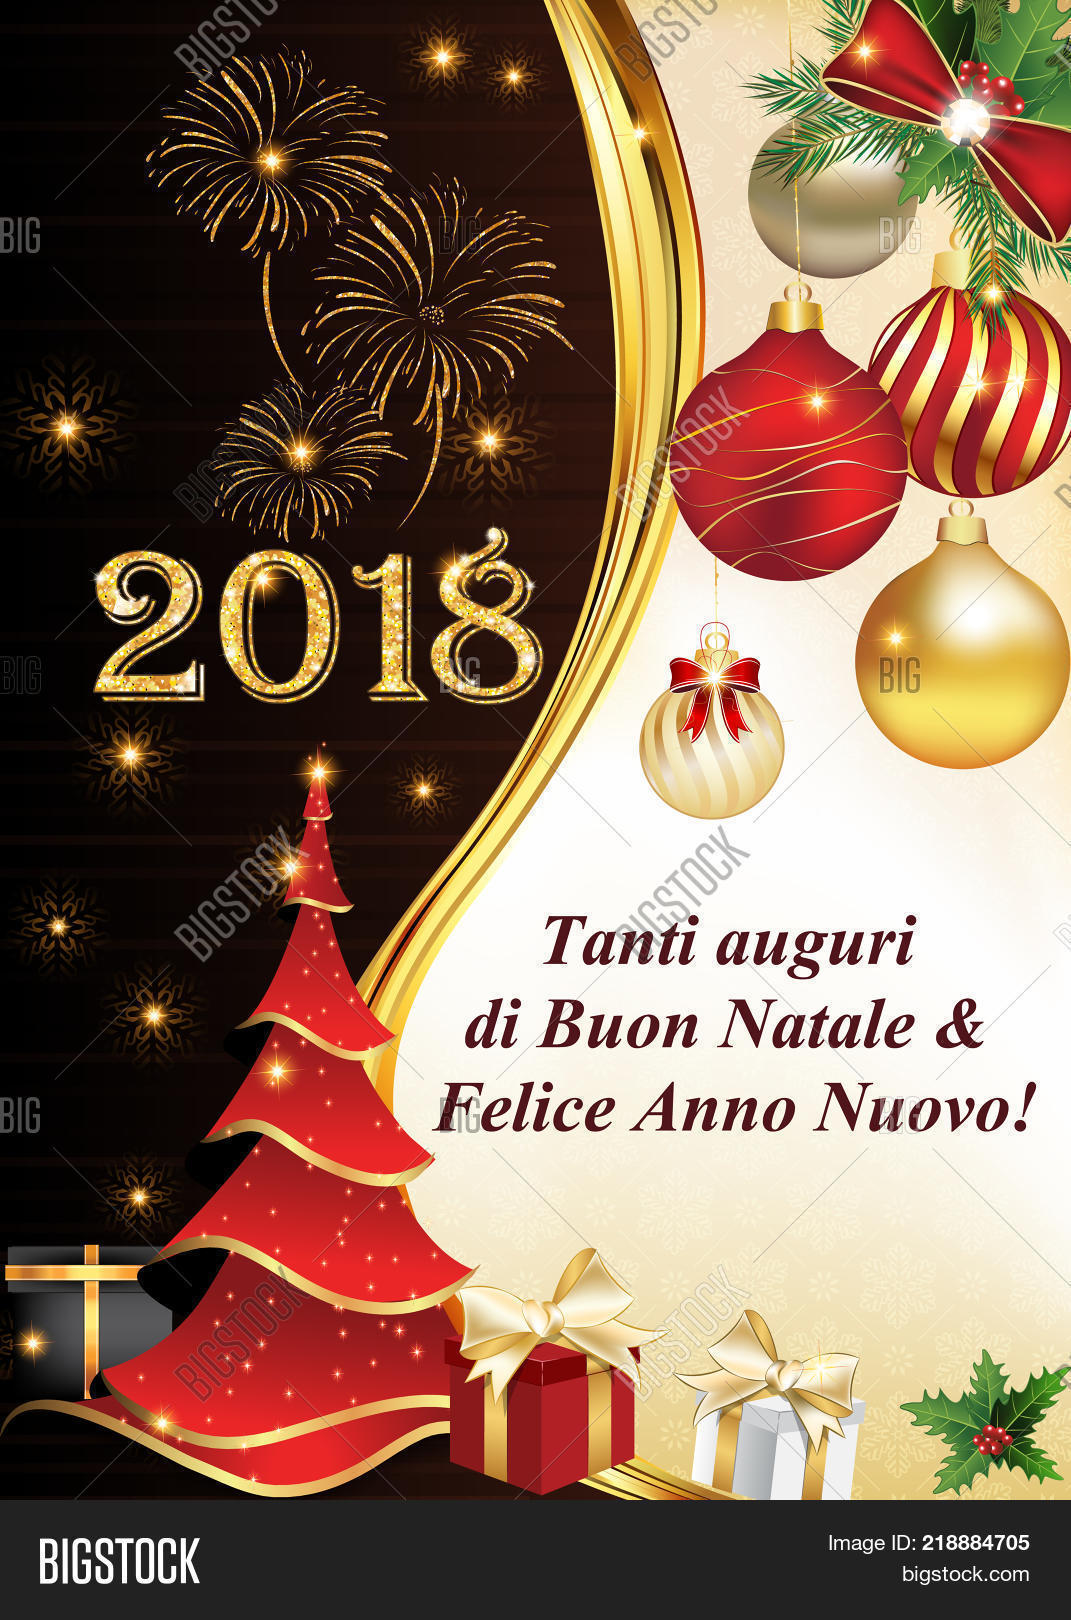 2018 italian corporate holiday season greeting card designed for italian speaking clients companies text - Merry Christmas And Happy New Year In Italian